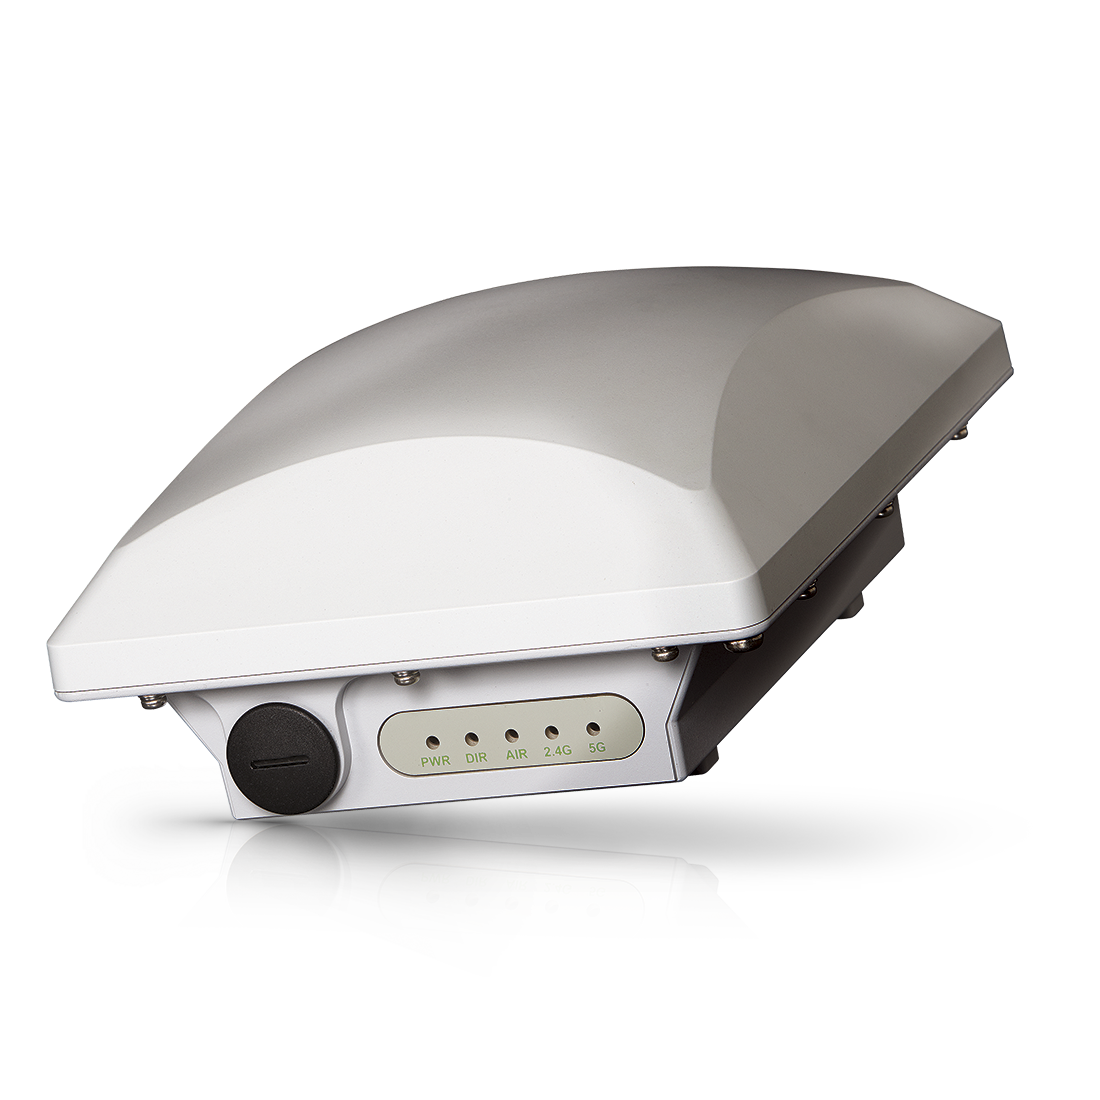 ACCESS POINT T301